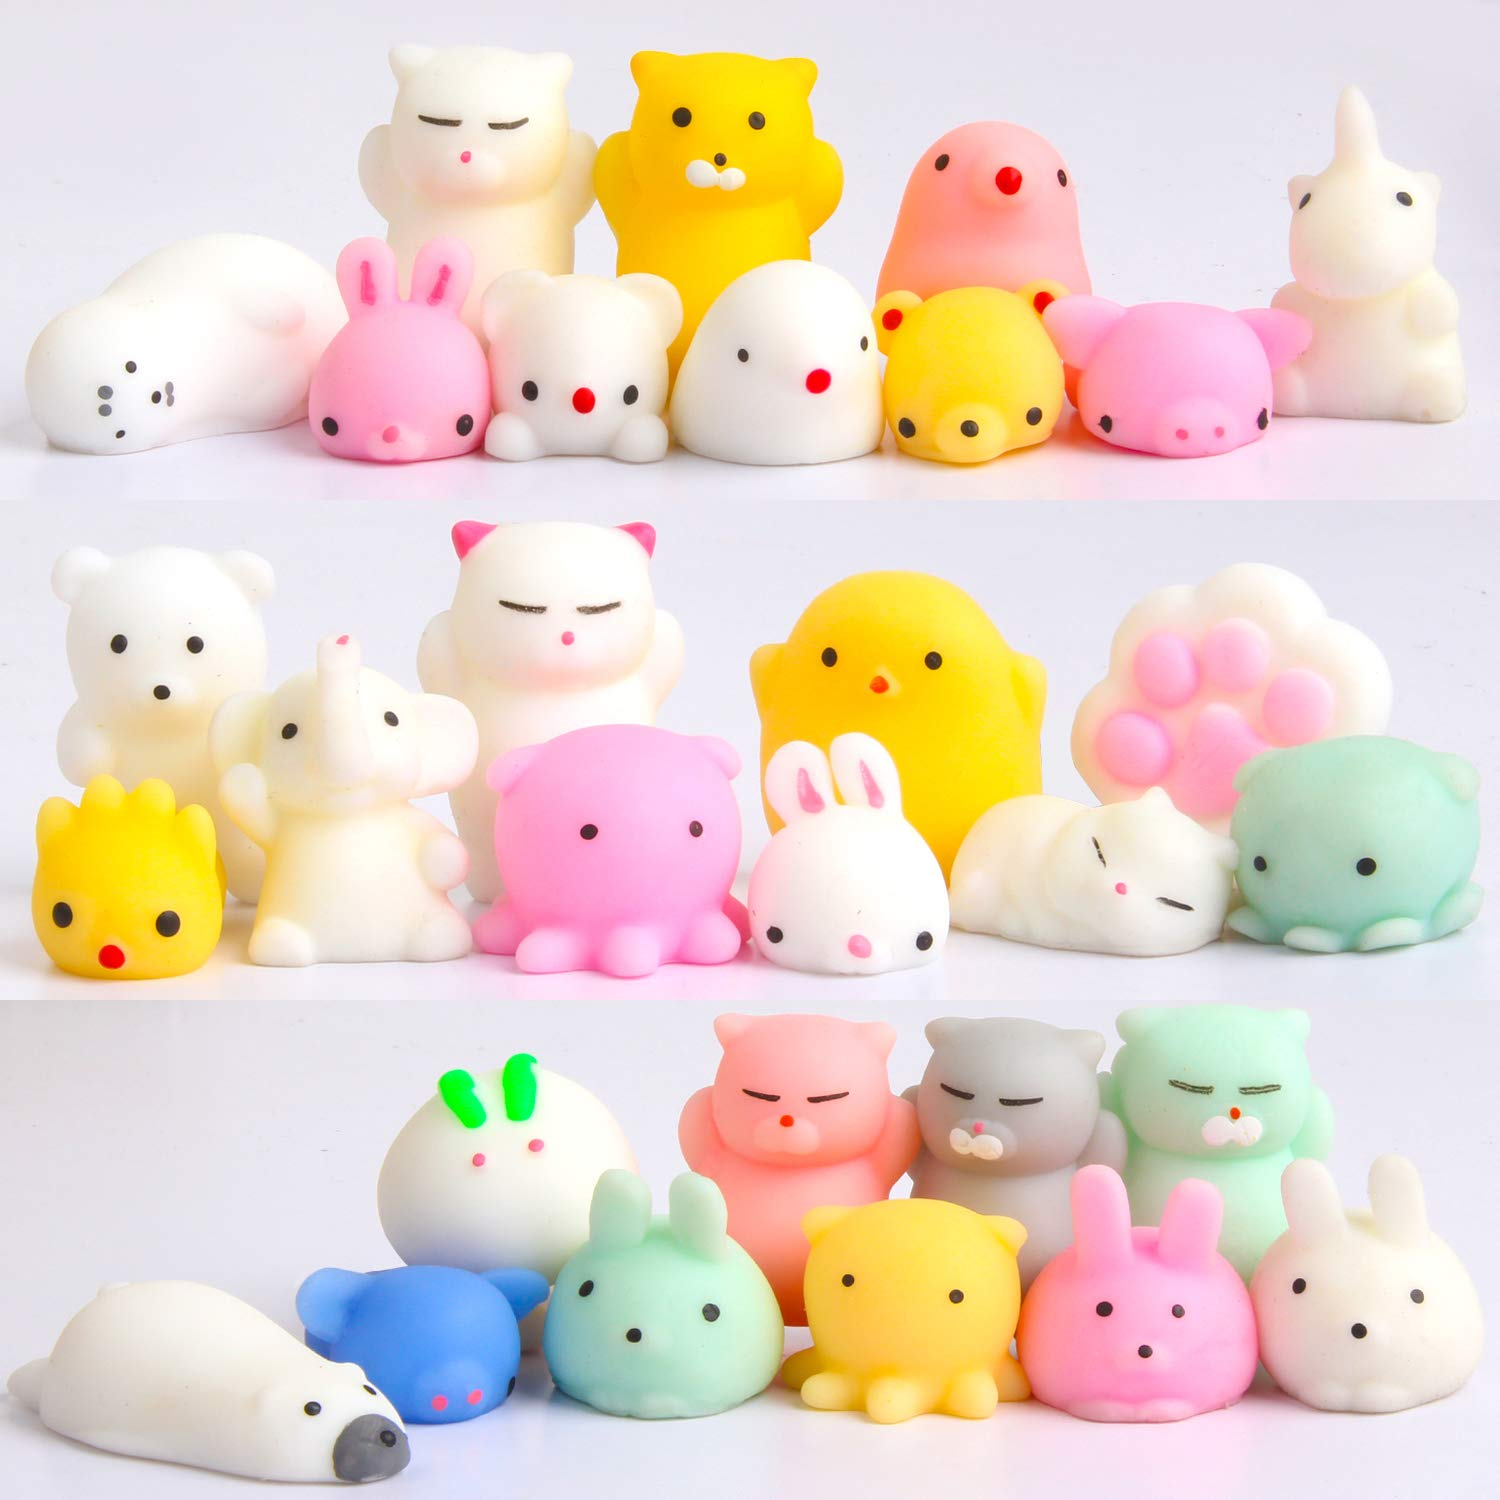 Squishy Toy Mini Mochi Squishies - Party Favors 30 Pack Kawaii Animals Cute Unicorn Cat Soft Squeeze Stress Relief Toys for Kid Adults